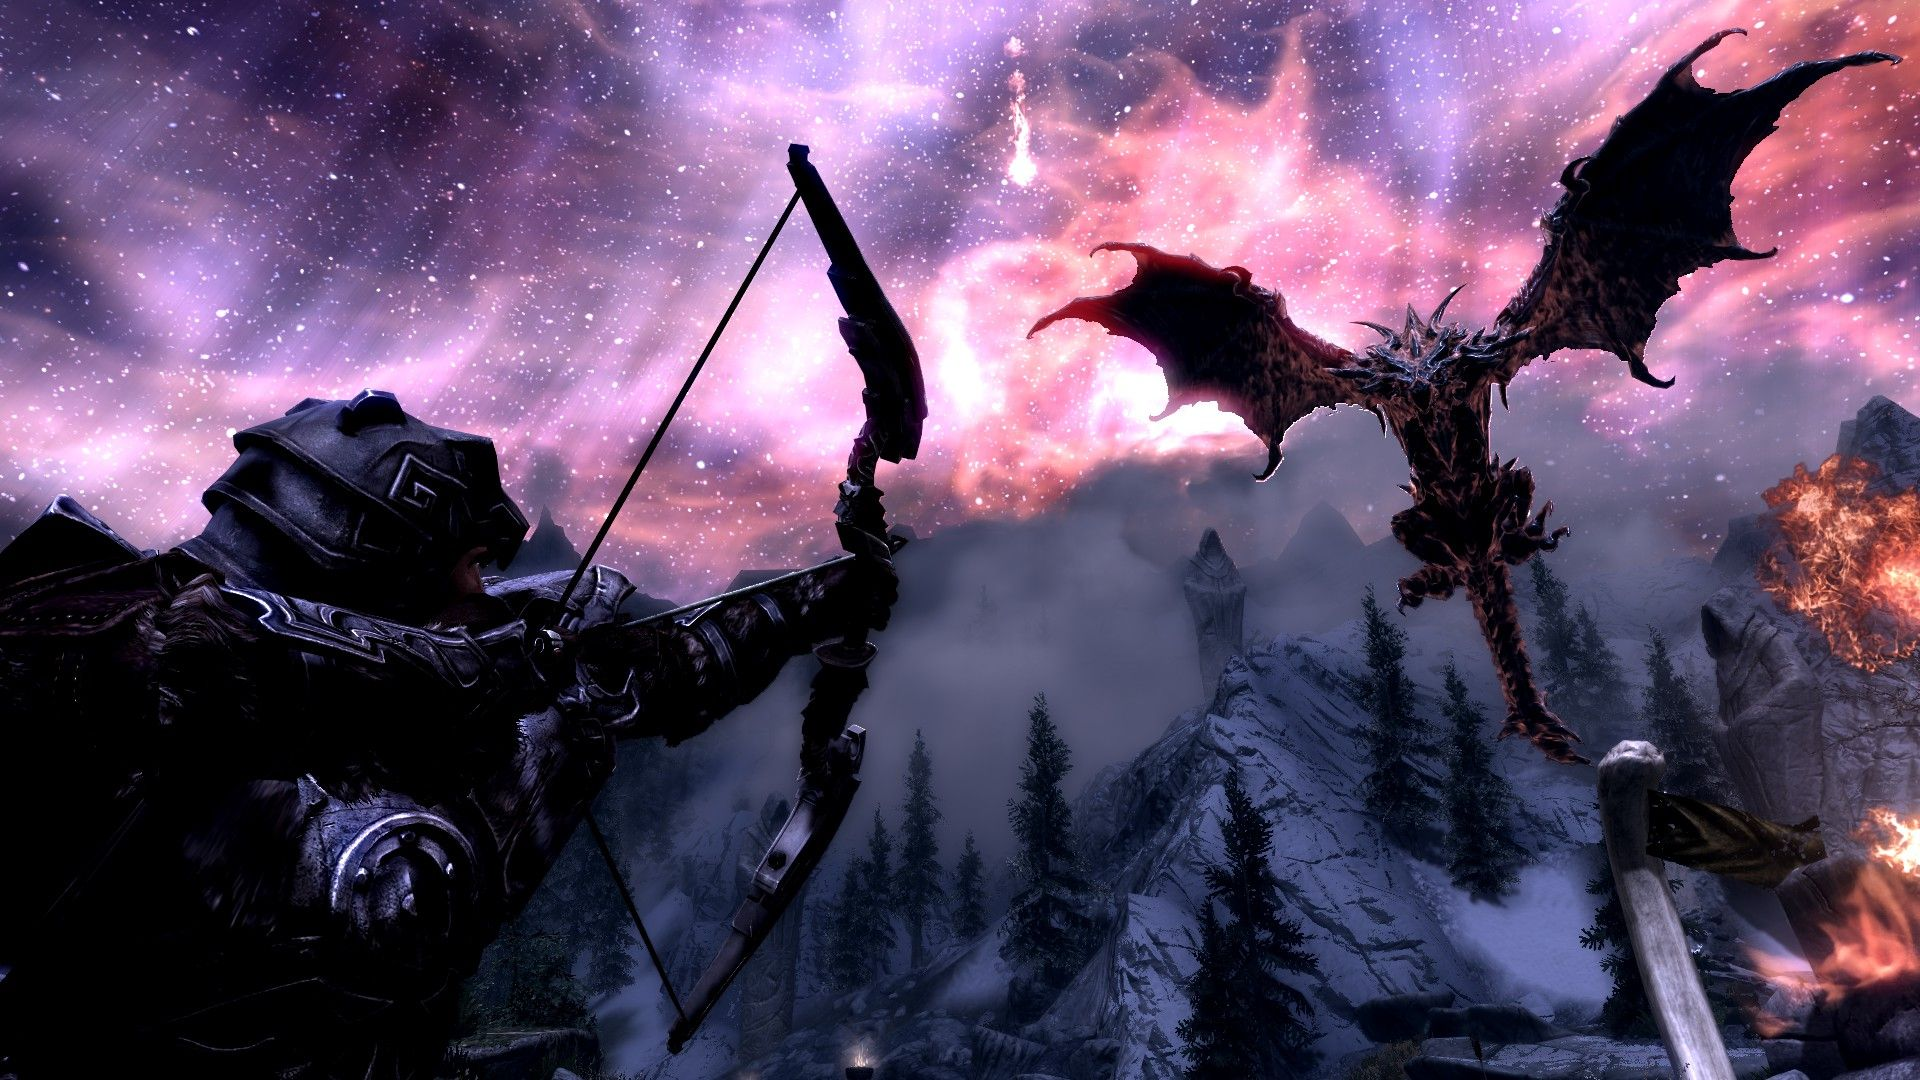 10 Bosses That Hurt Skyrim (And 10 That Saved It)